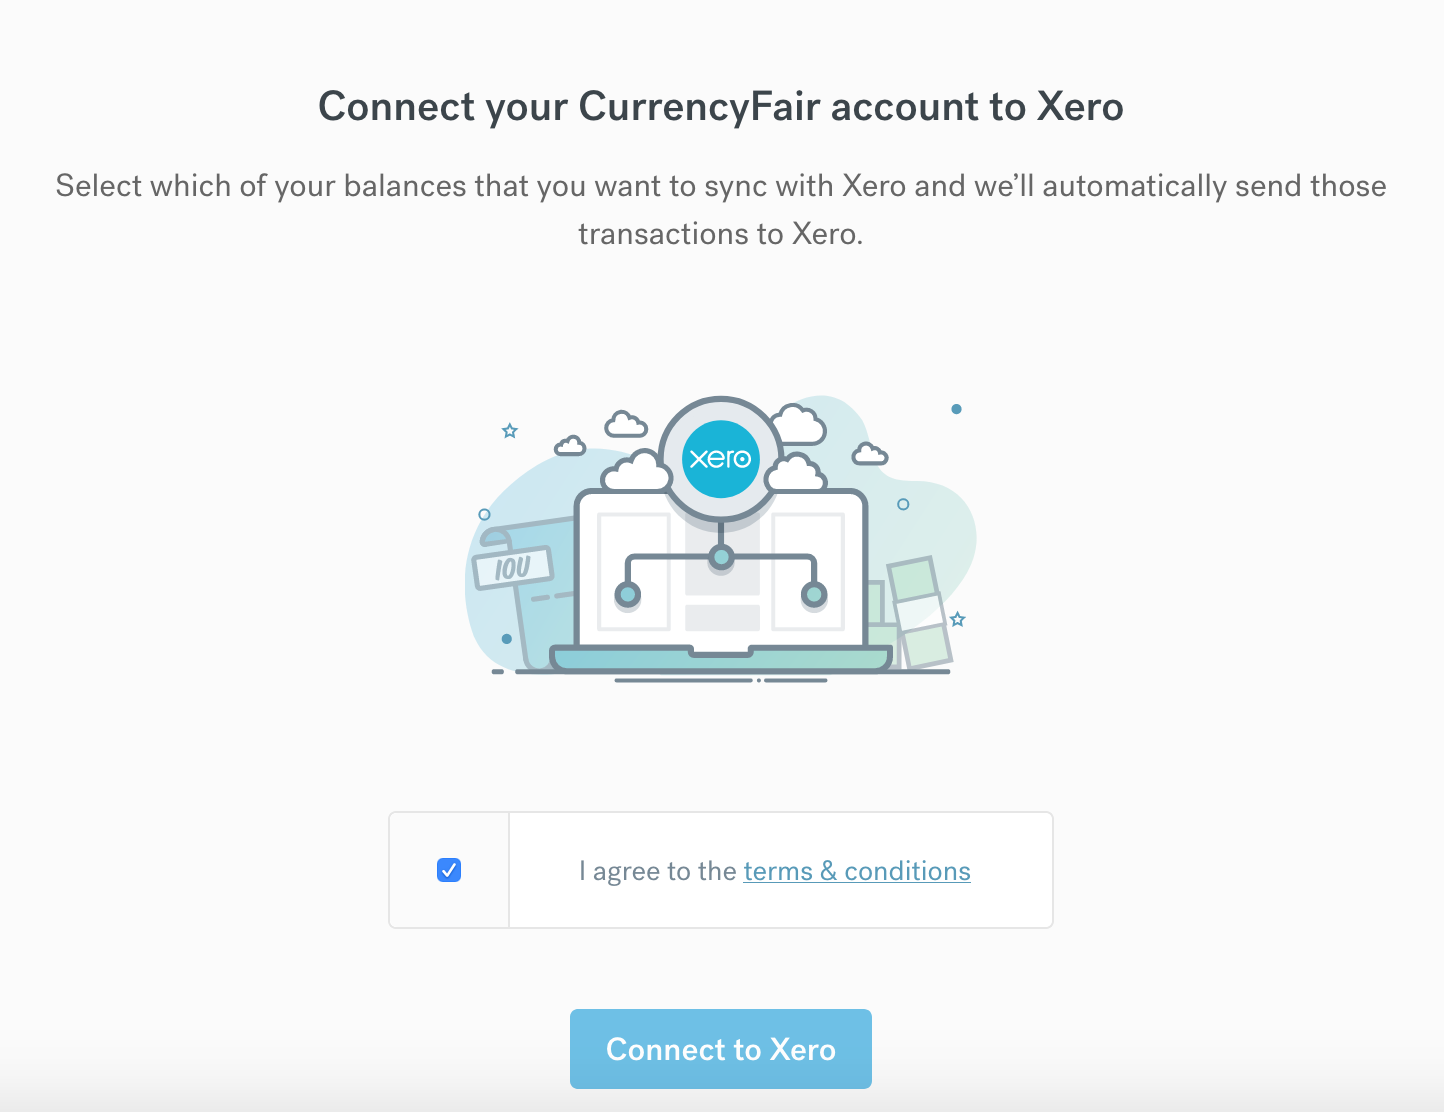 connect CurrencyFair to Xero